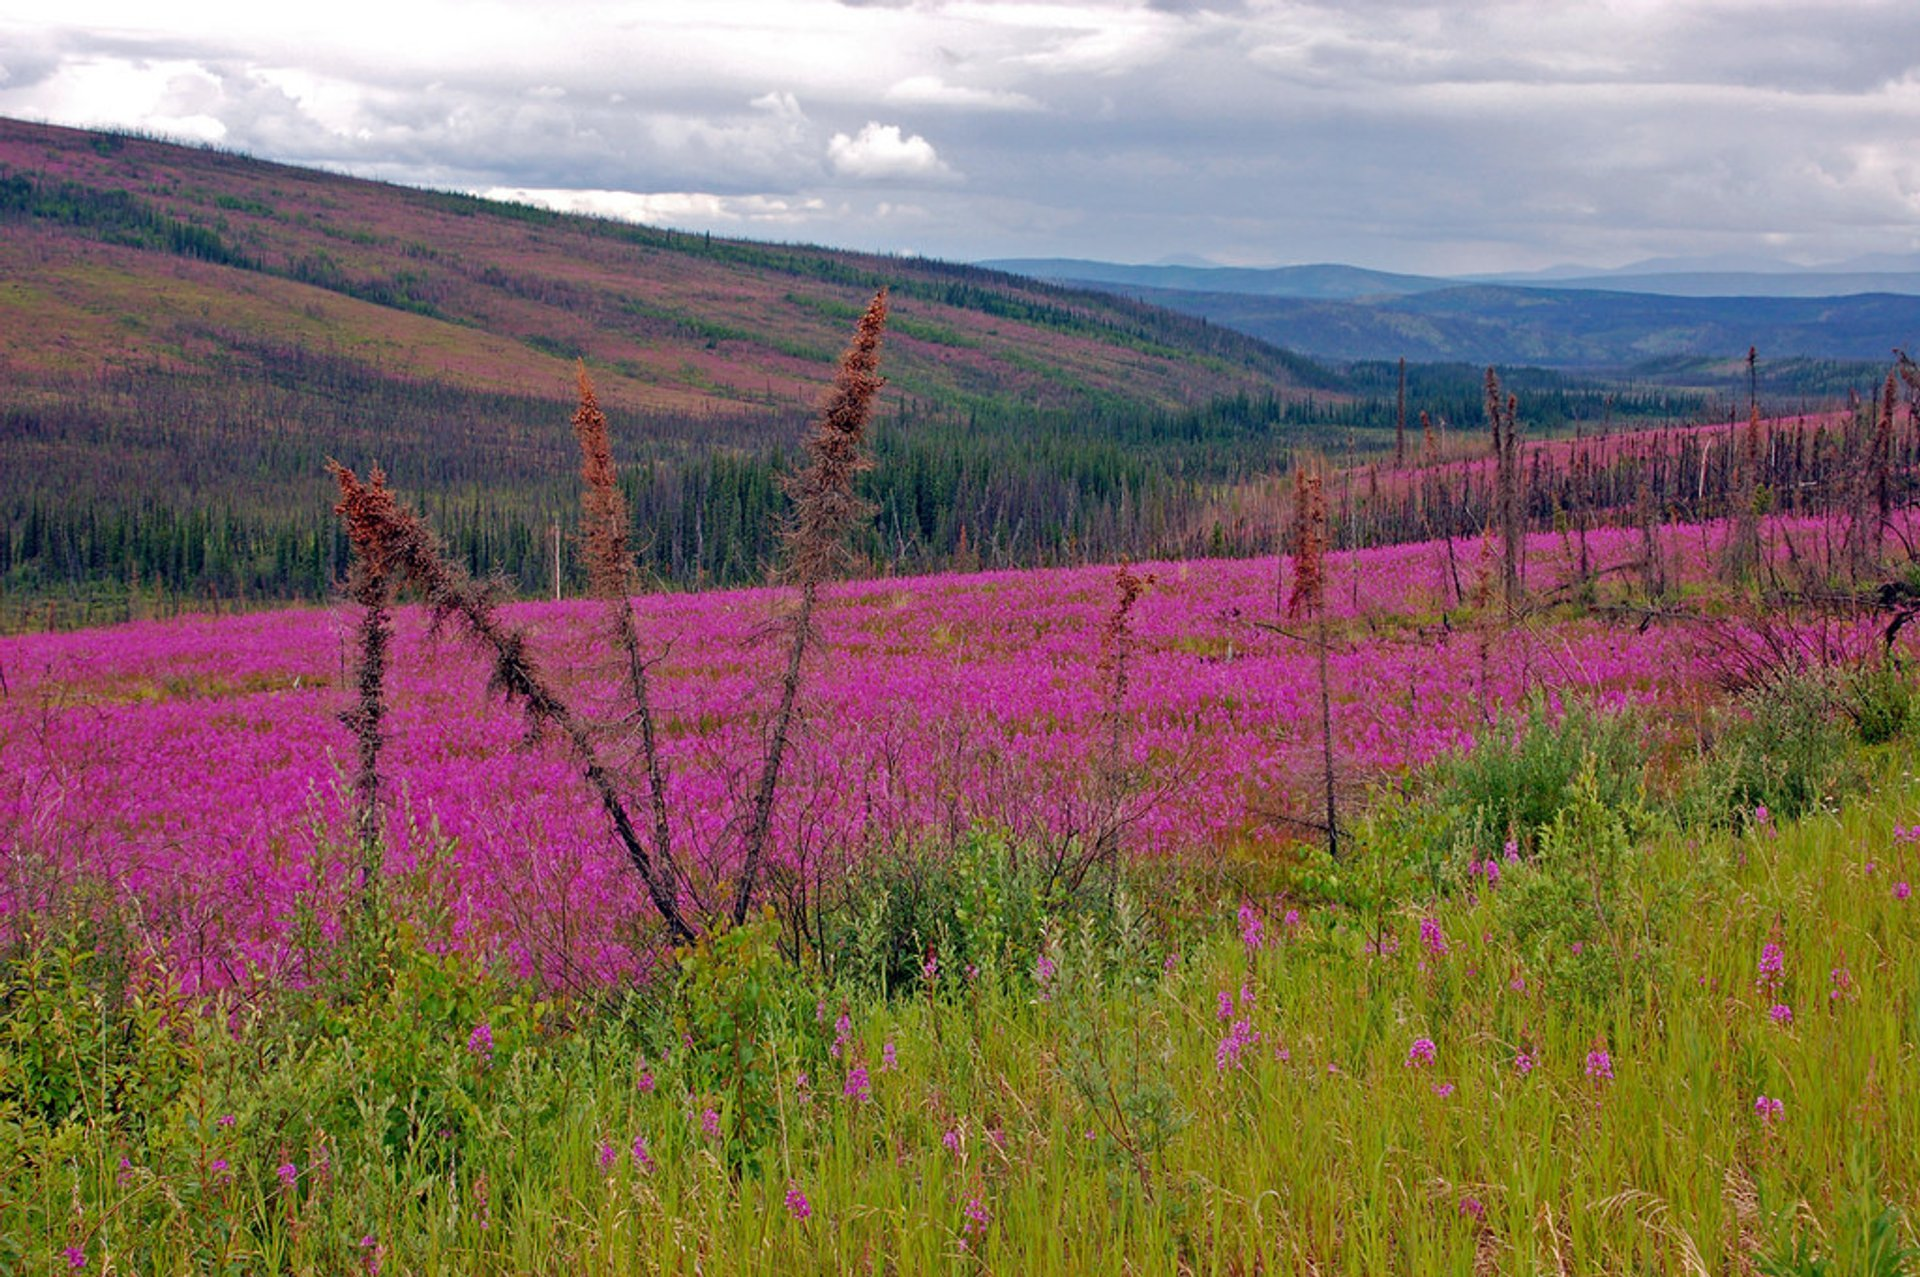 Fireweed and Shooting Stars Bloom in Alaska - Best Season 2020